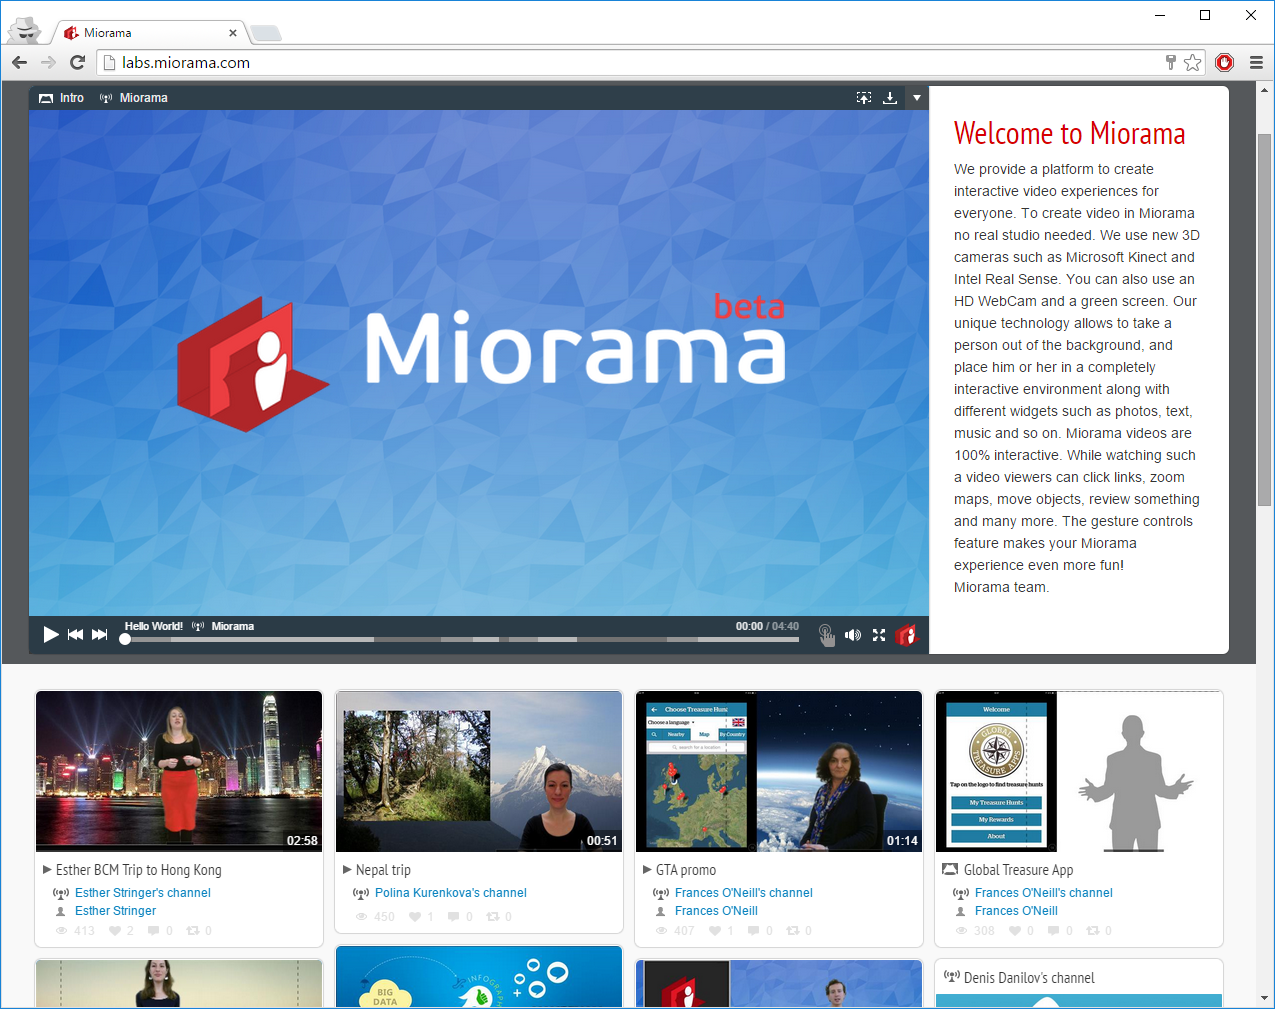 Miorama Labs